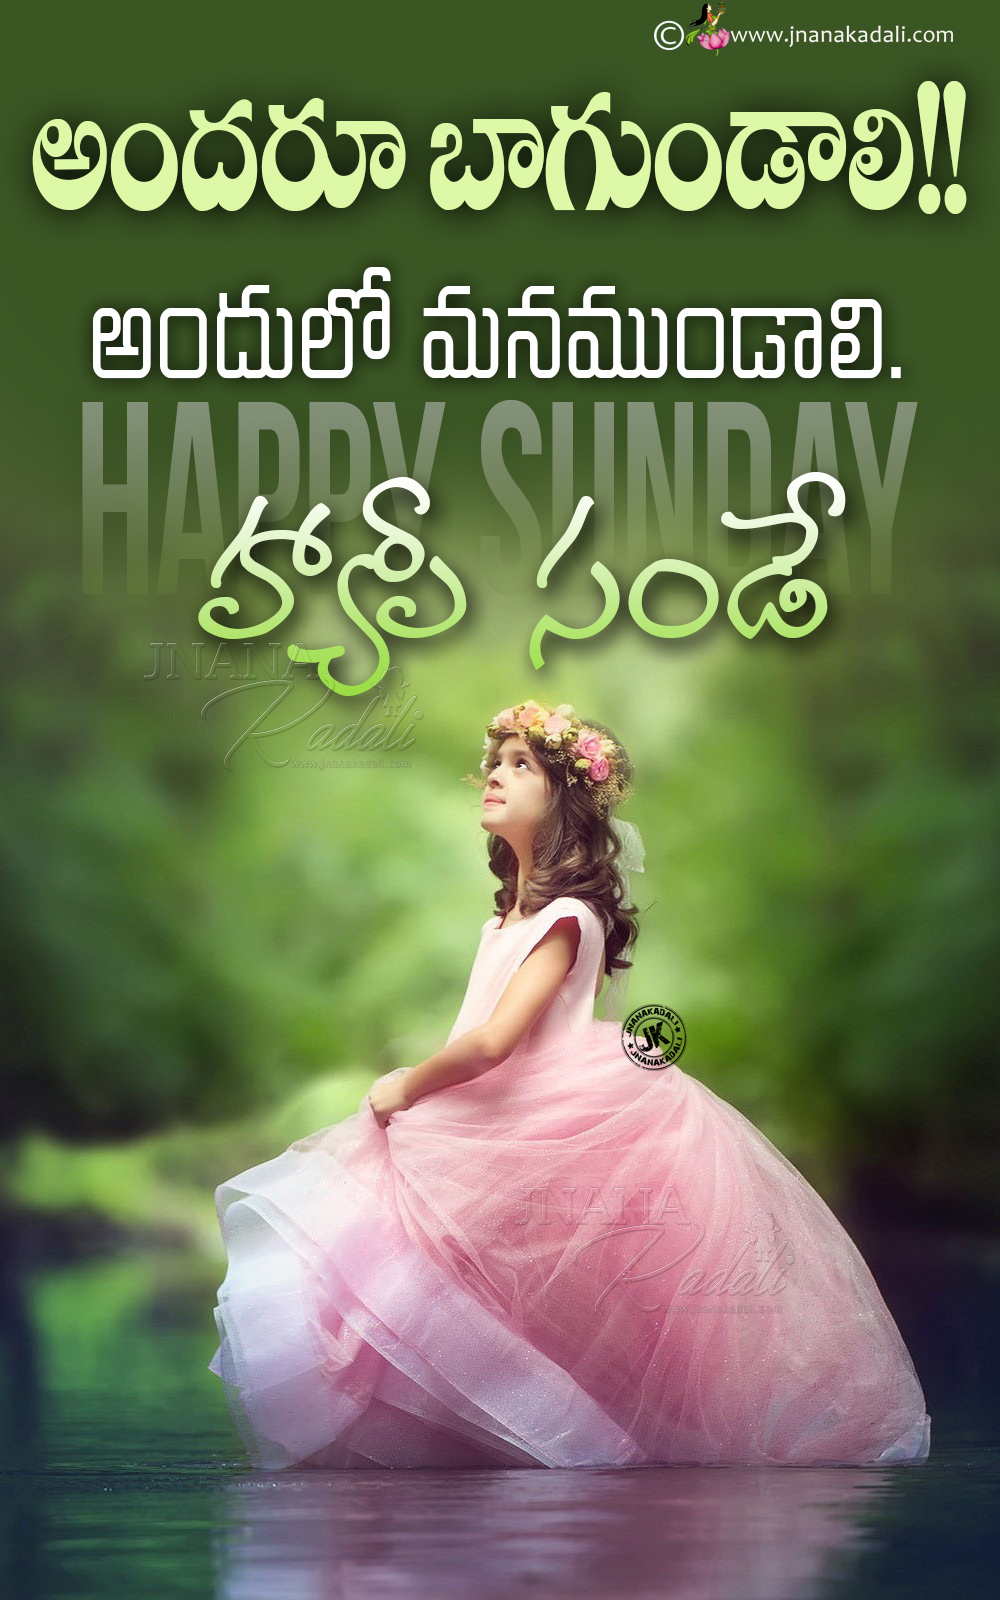 Telugu Comedy Wallpapers With Quotes: Happy Sunday Quotes In Telugu-Telugu Good Morning Quotes